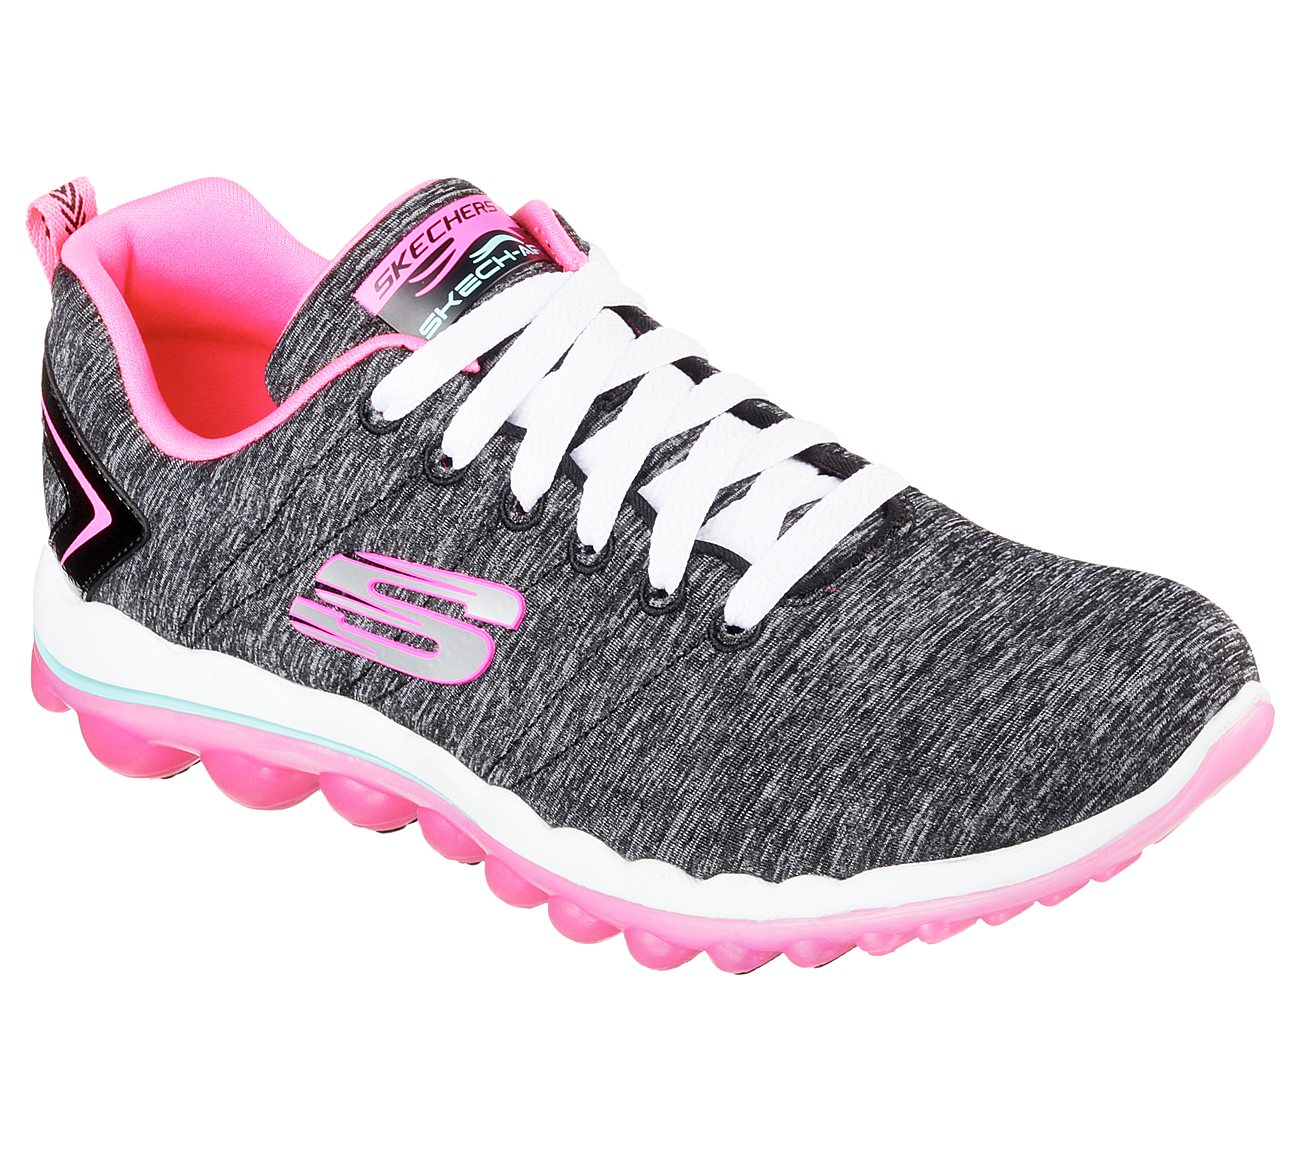 Skechers Shoes  Skechers Sweet Life 12109 Womens Sports Shoes NavyLight Blue